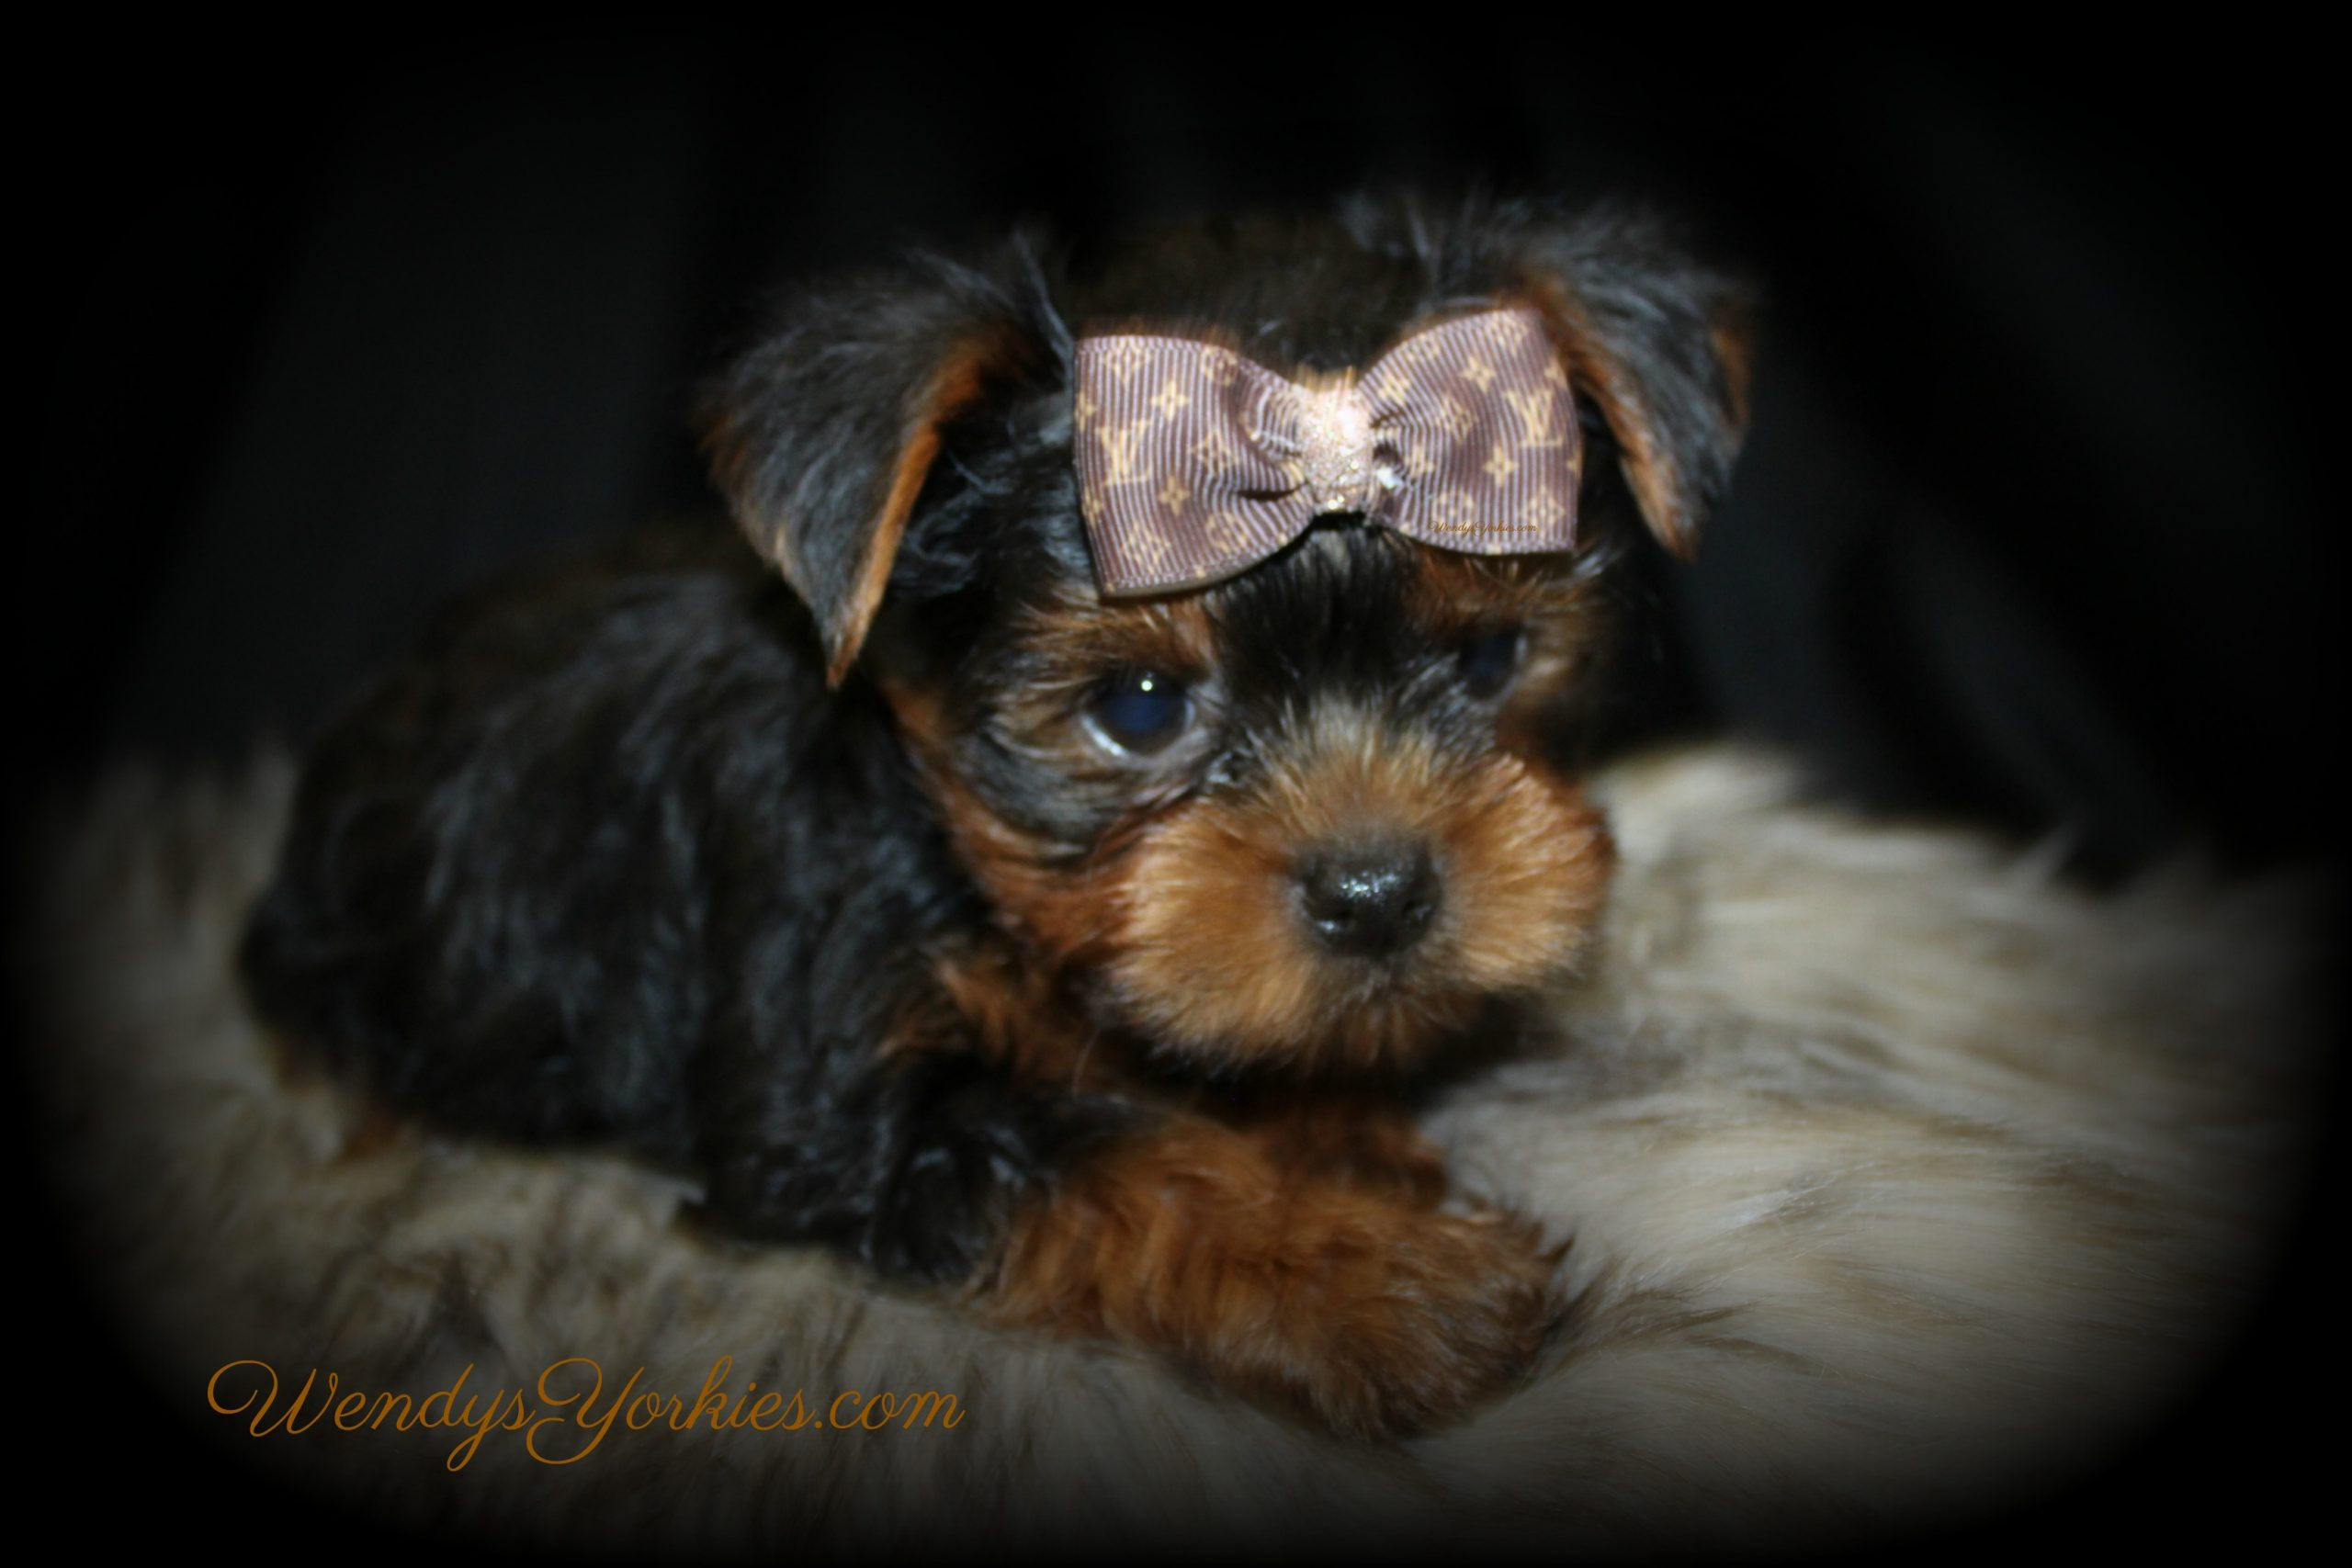 Teacup Male YOrkie puppy for sale, Louie, WendysYorkies.com